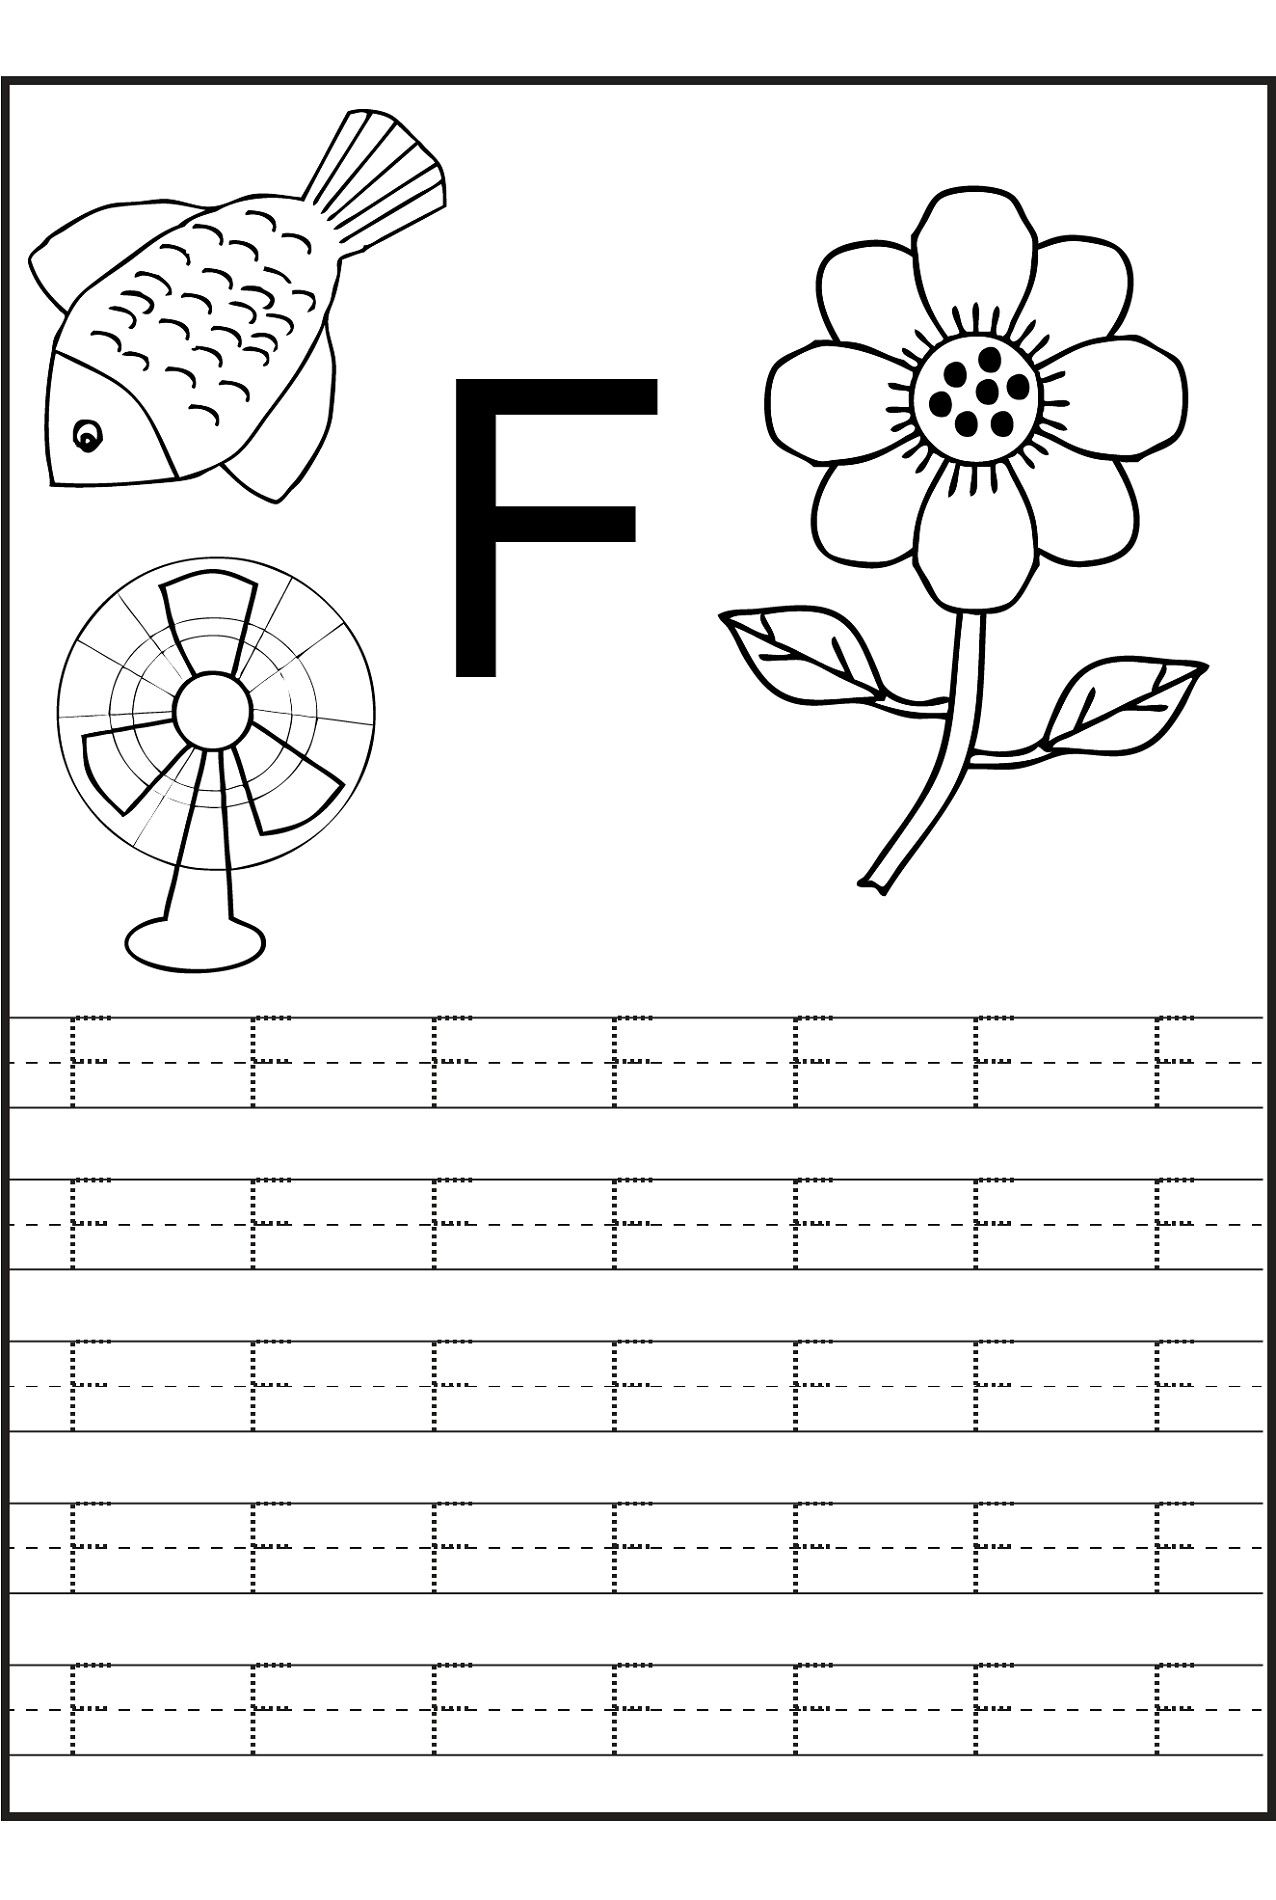 Pin By Engdoaa On Worksheets For Kg And Pre Kg